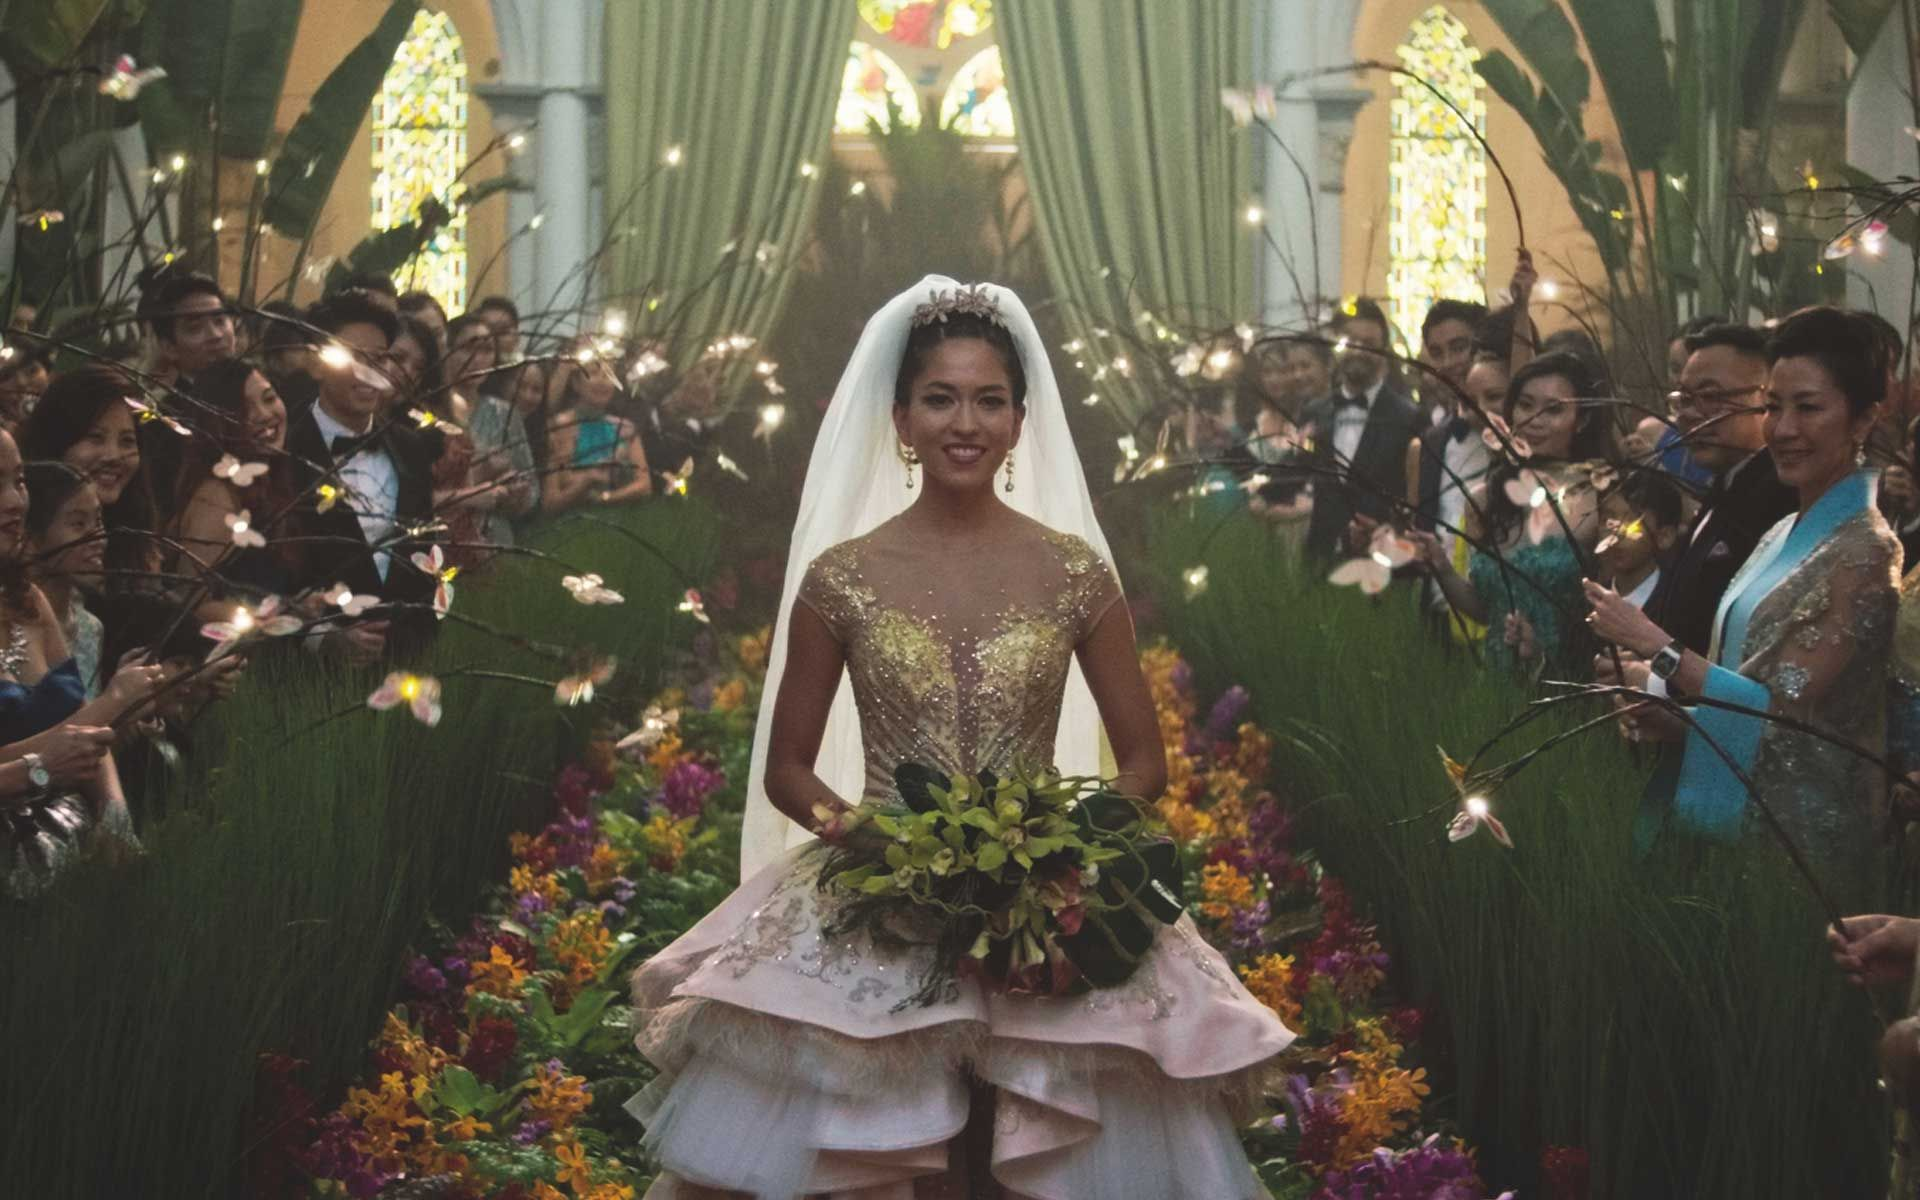 Do Crazy Rich Asians Throw Such Outrageous Parties? Our Asia Tatler Insiders Spill The Beans